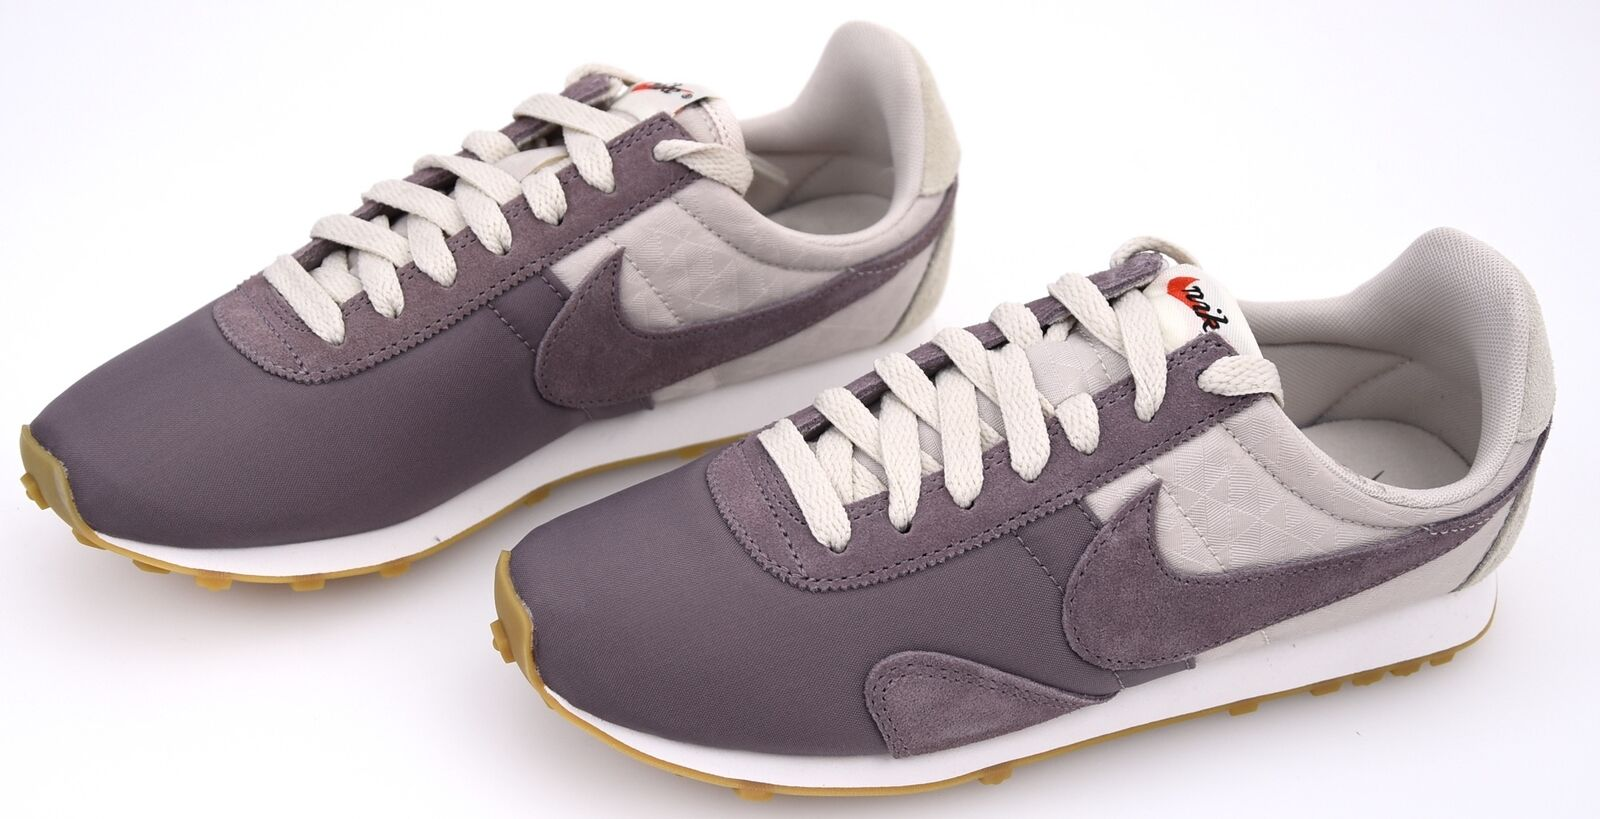 NIKE WOMAN SNEAKER SHOES CASUAL FREE TIME 828436 103 W PRE MONTREAL RACER VNTG